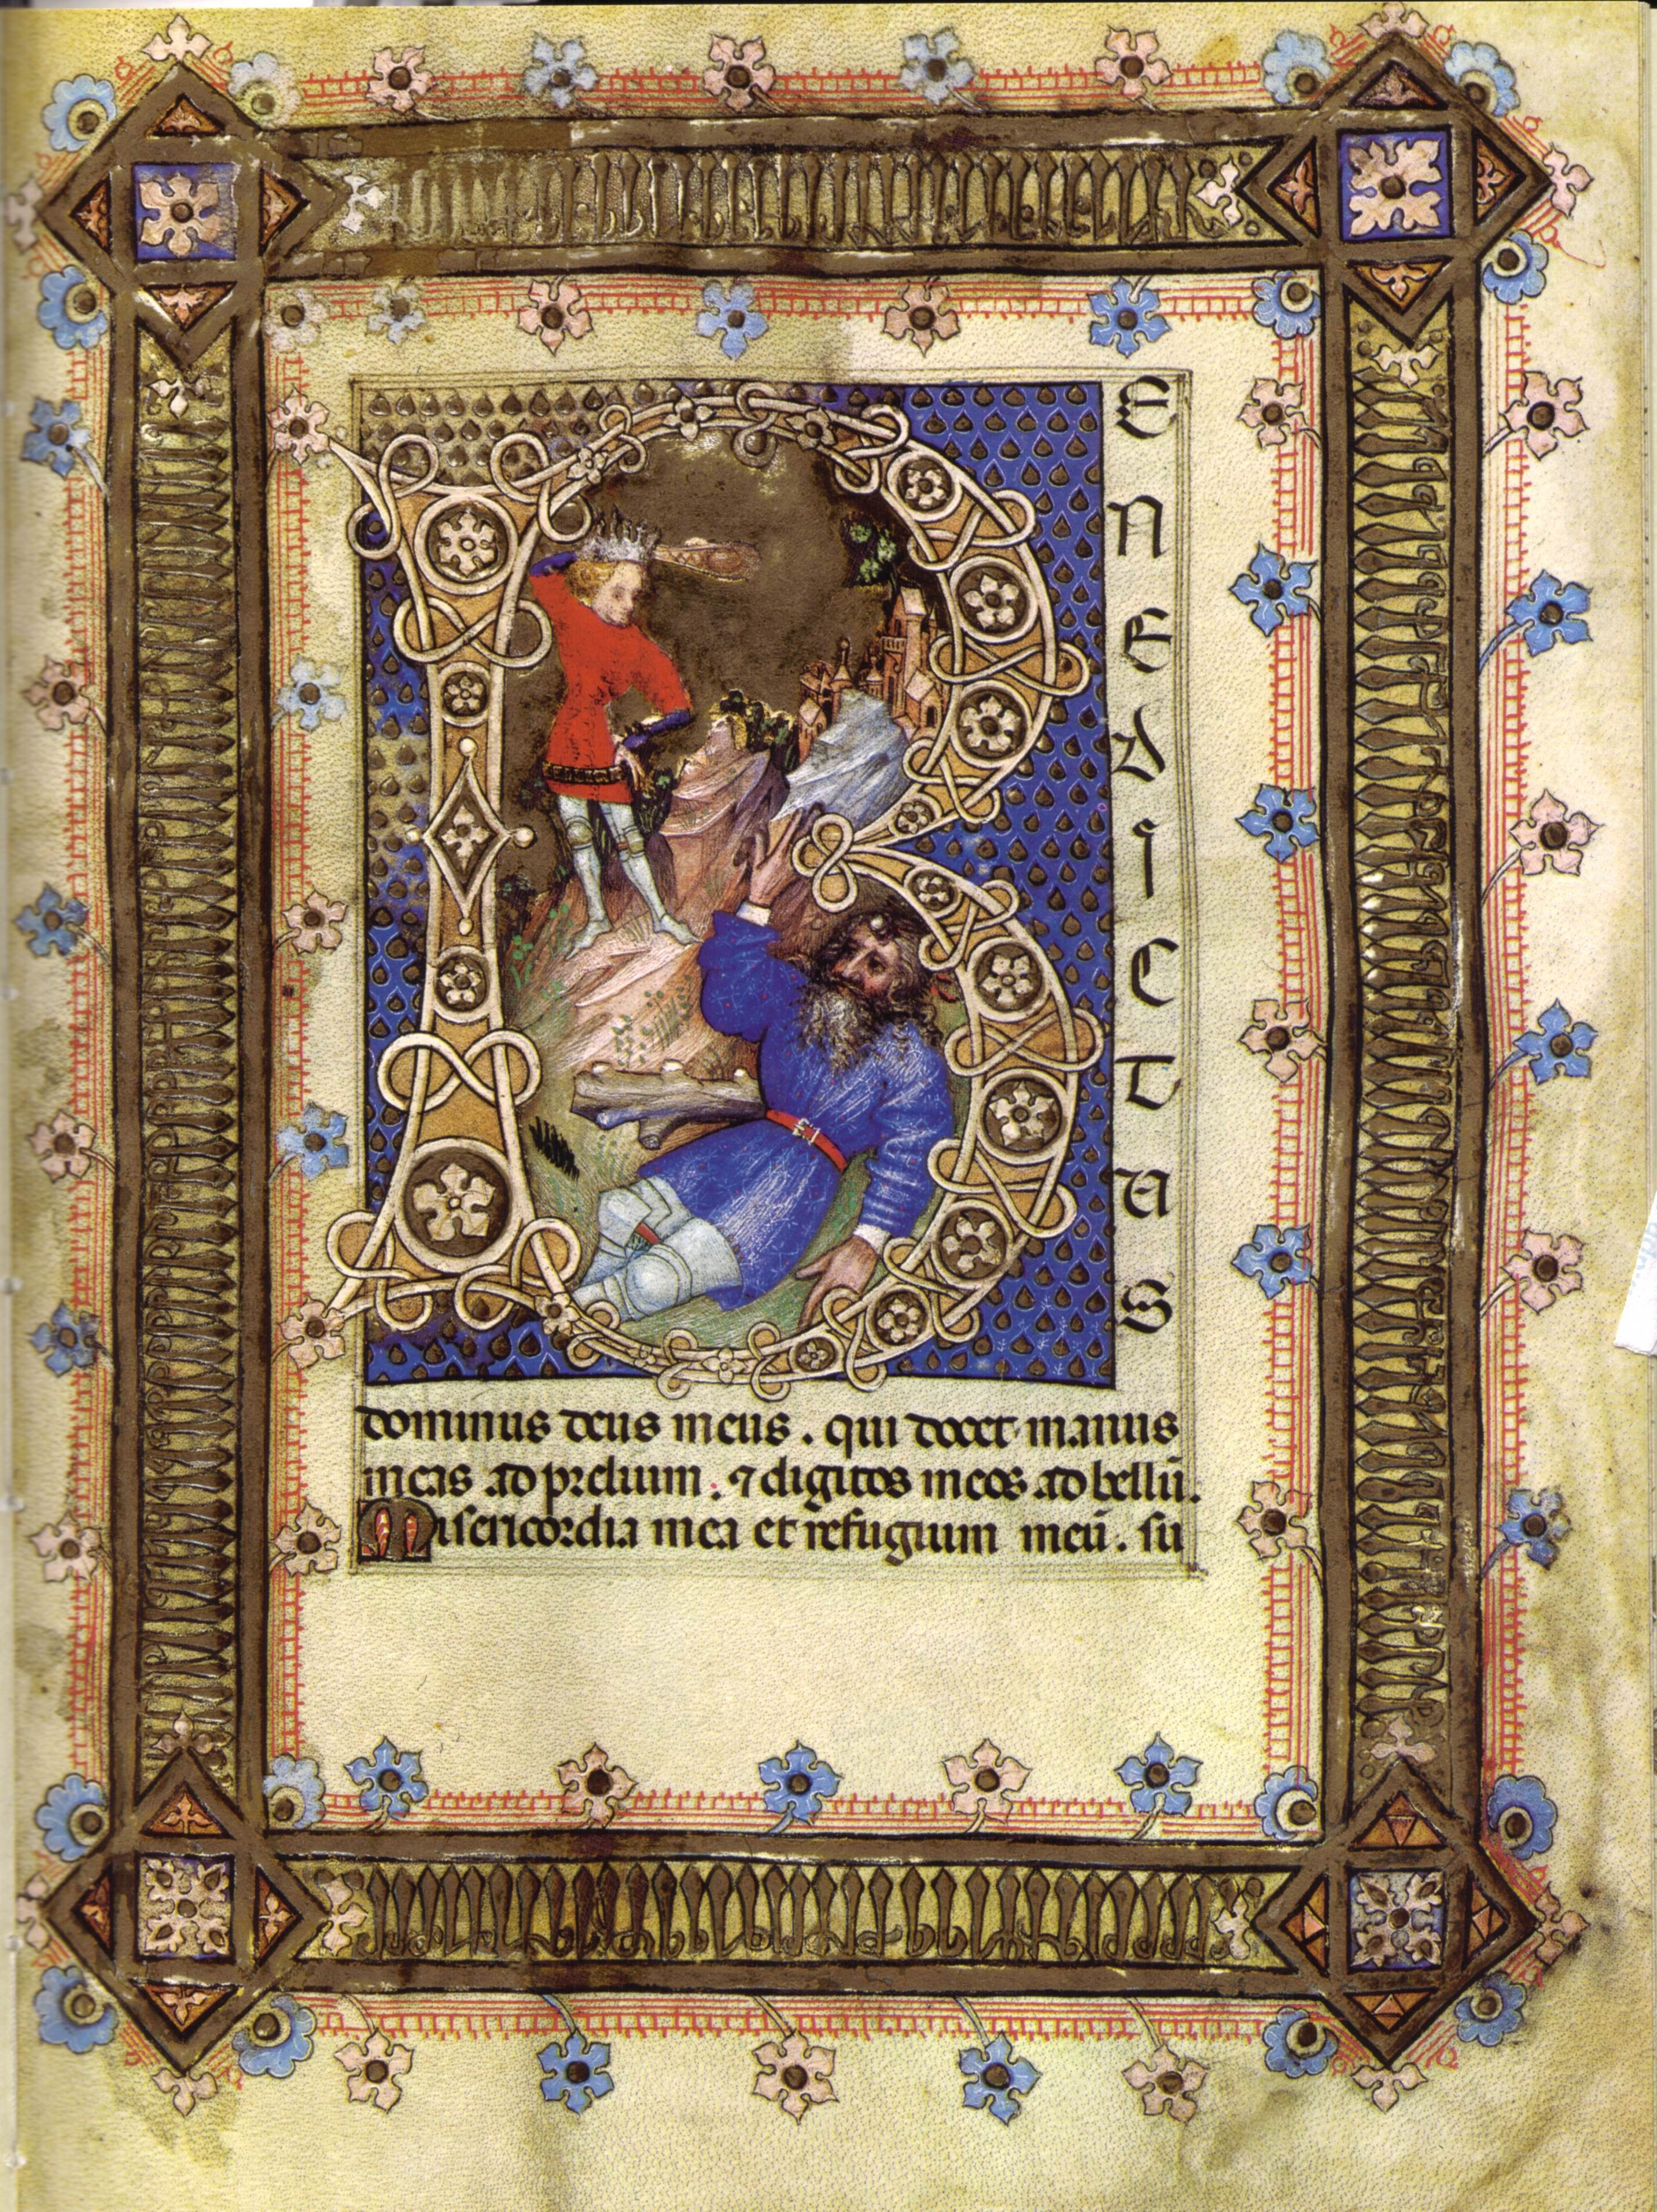 The original manuscript is from approximately 1402-1412.